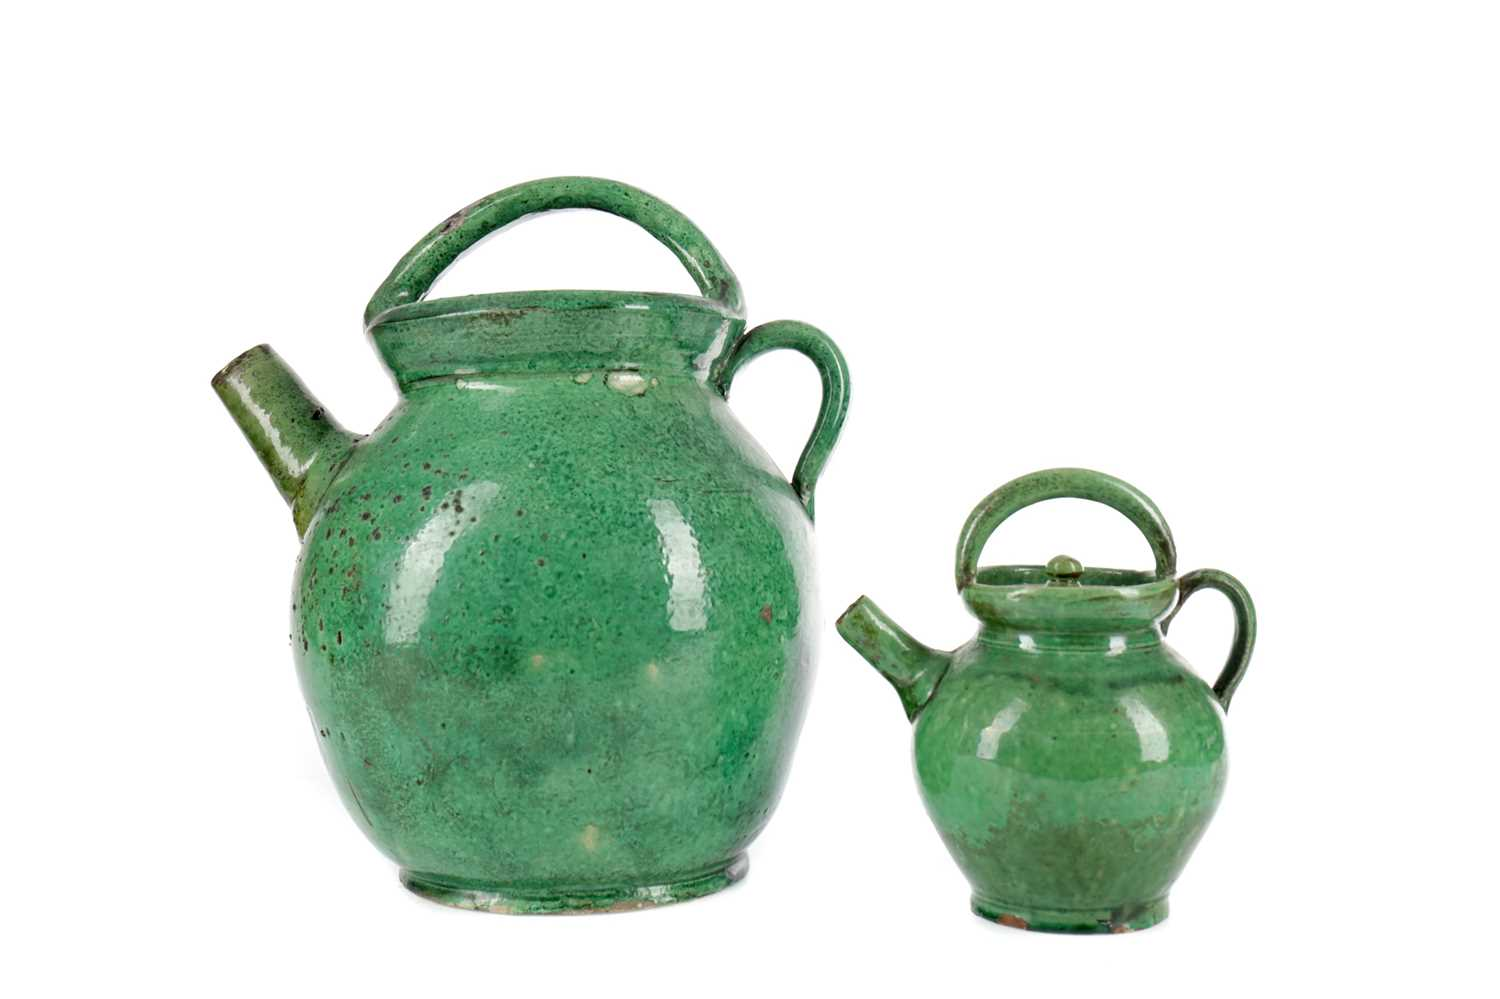 Lot 713 - AN EARLY 20TH CENTURY CHINESE STONEWARE TEA POT